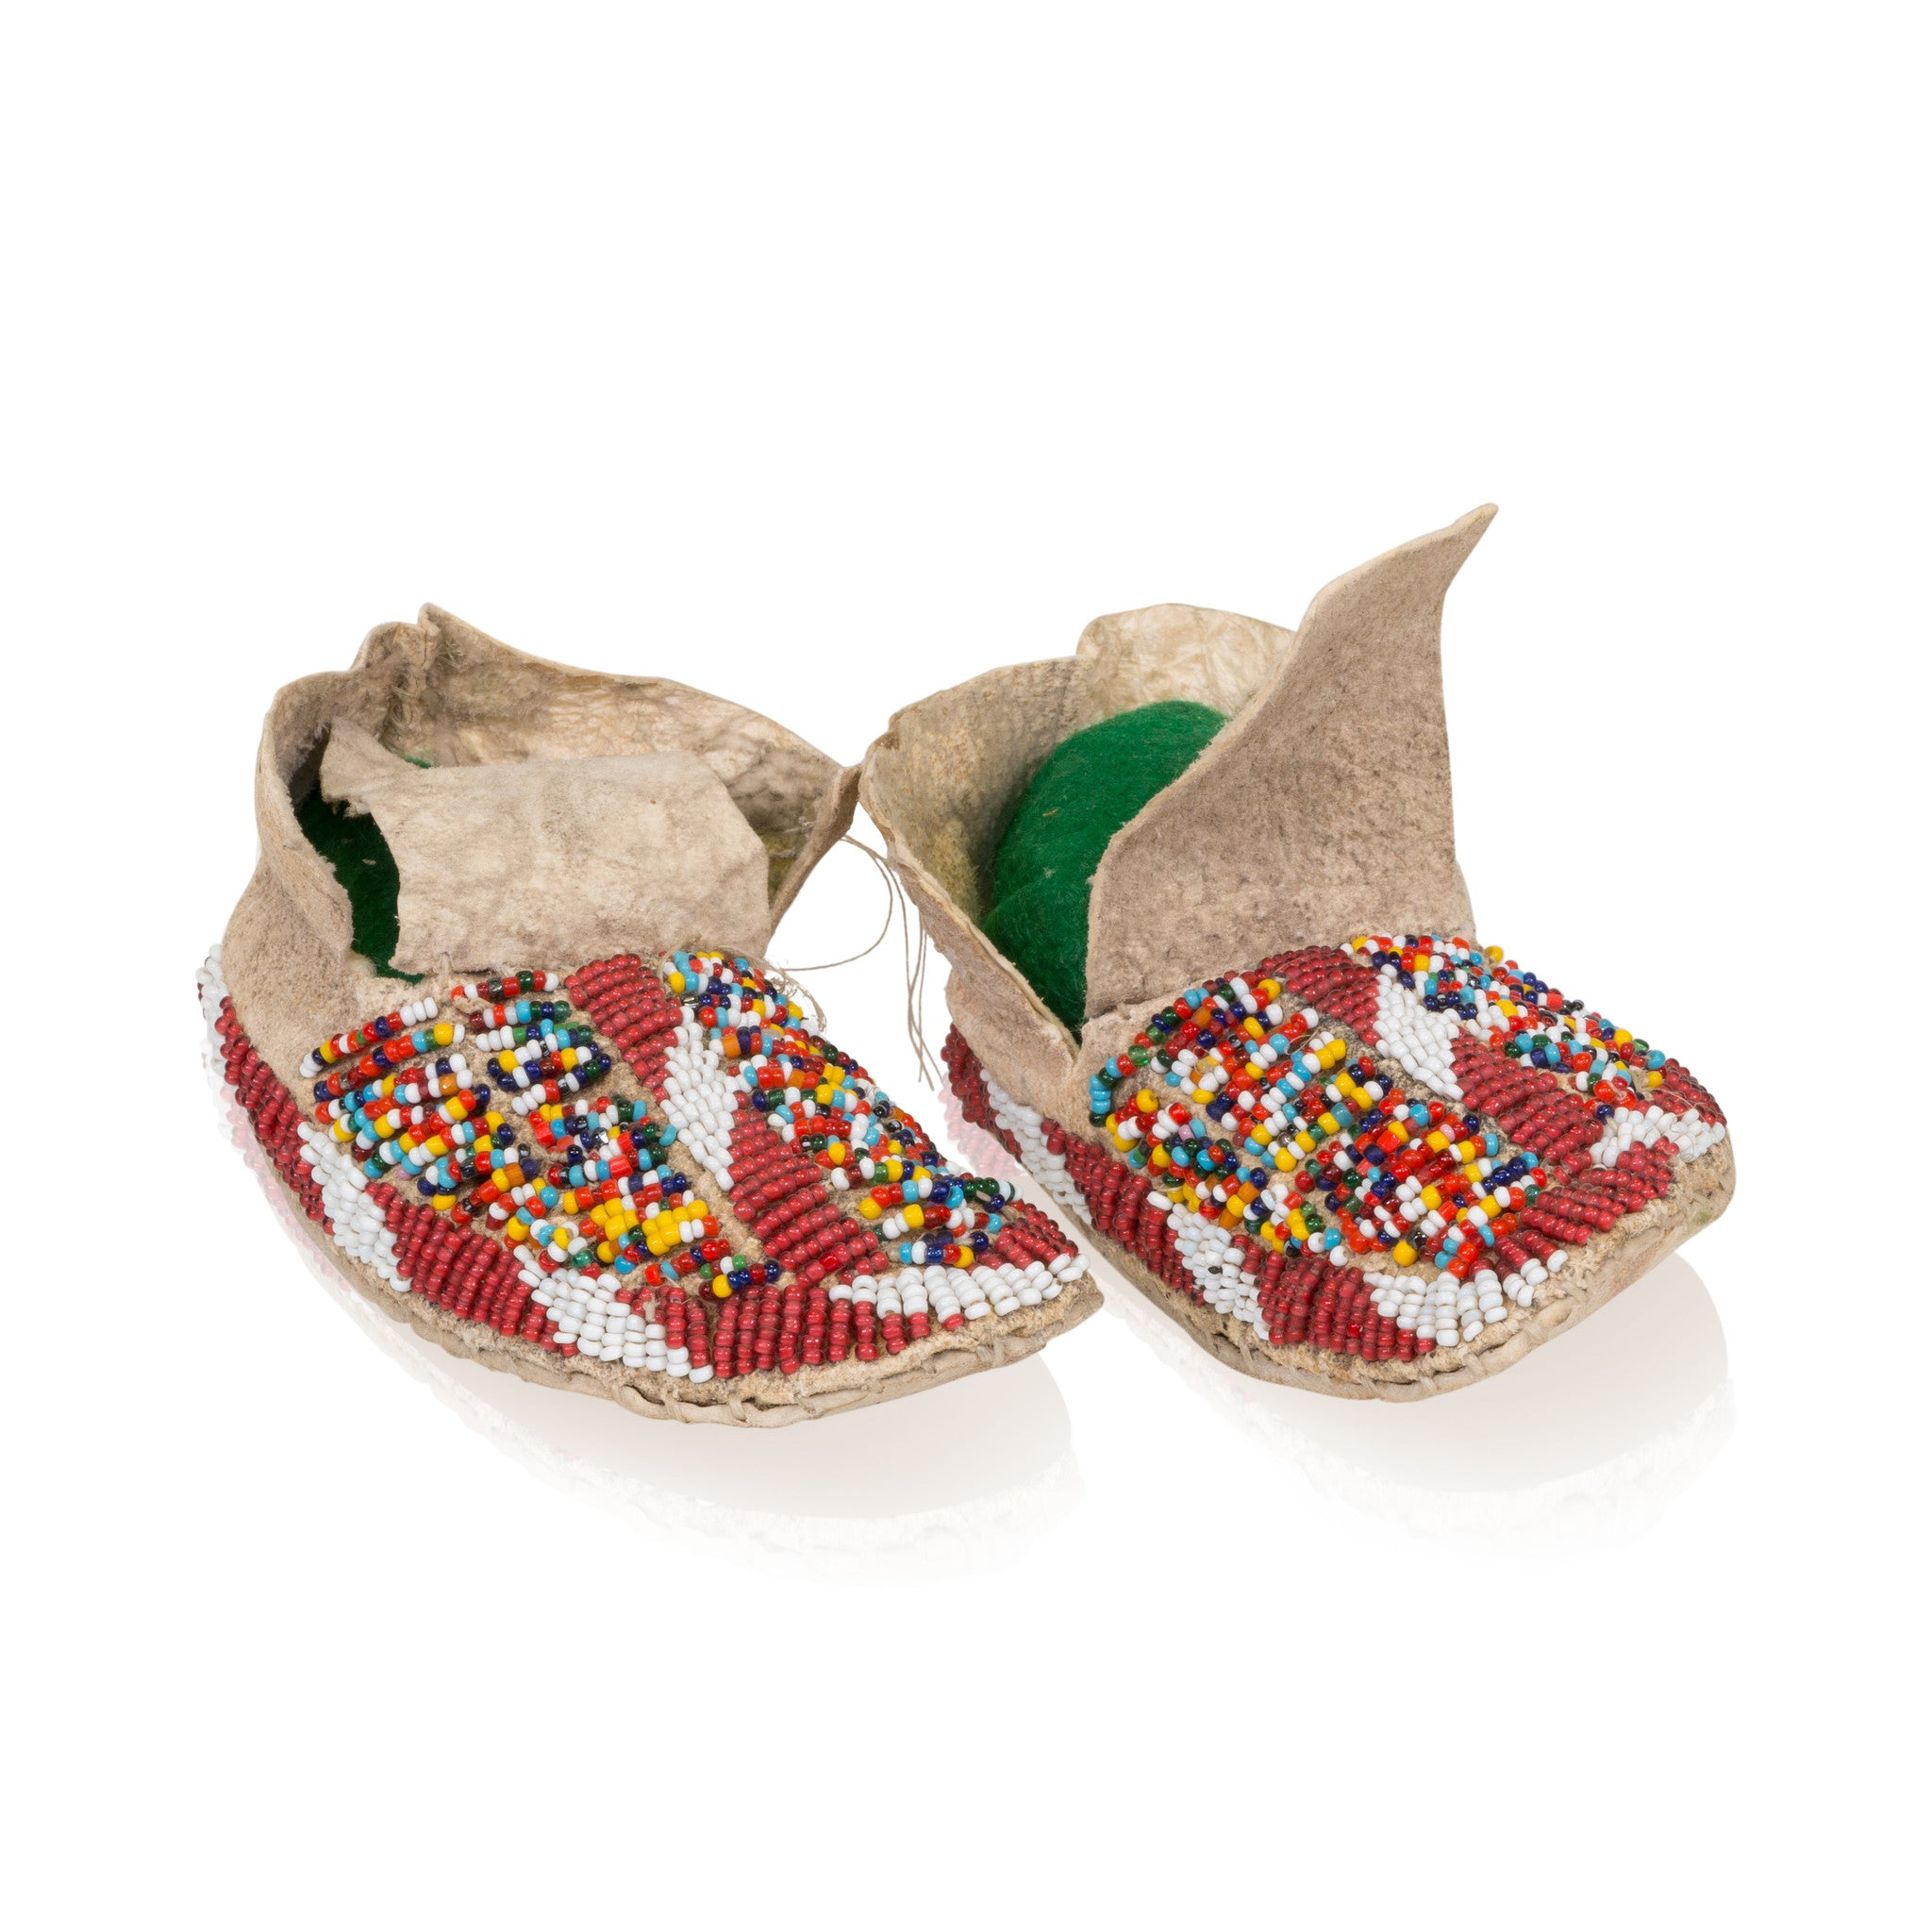 Sioux Baby Moccasins baby, beadwork, moccasins, sioux